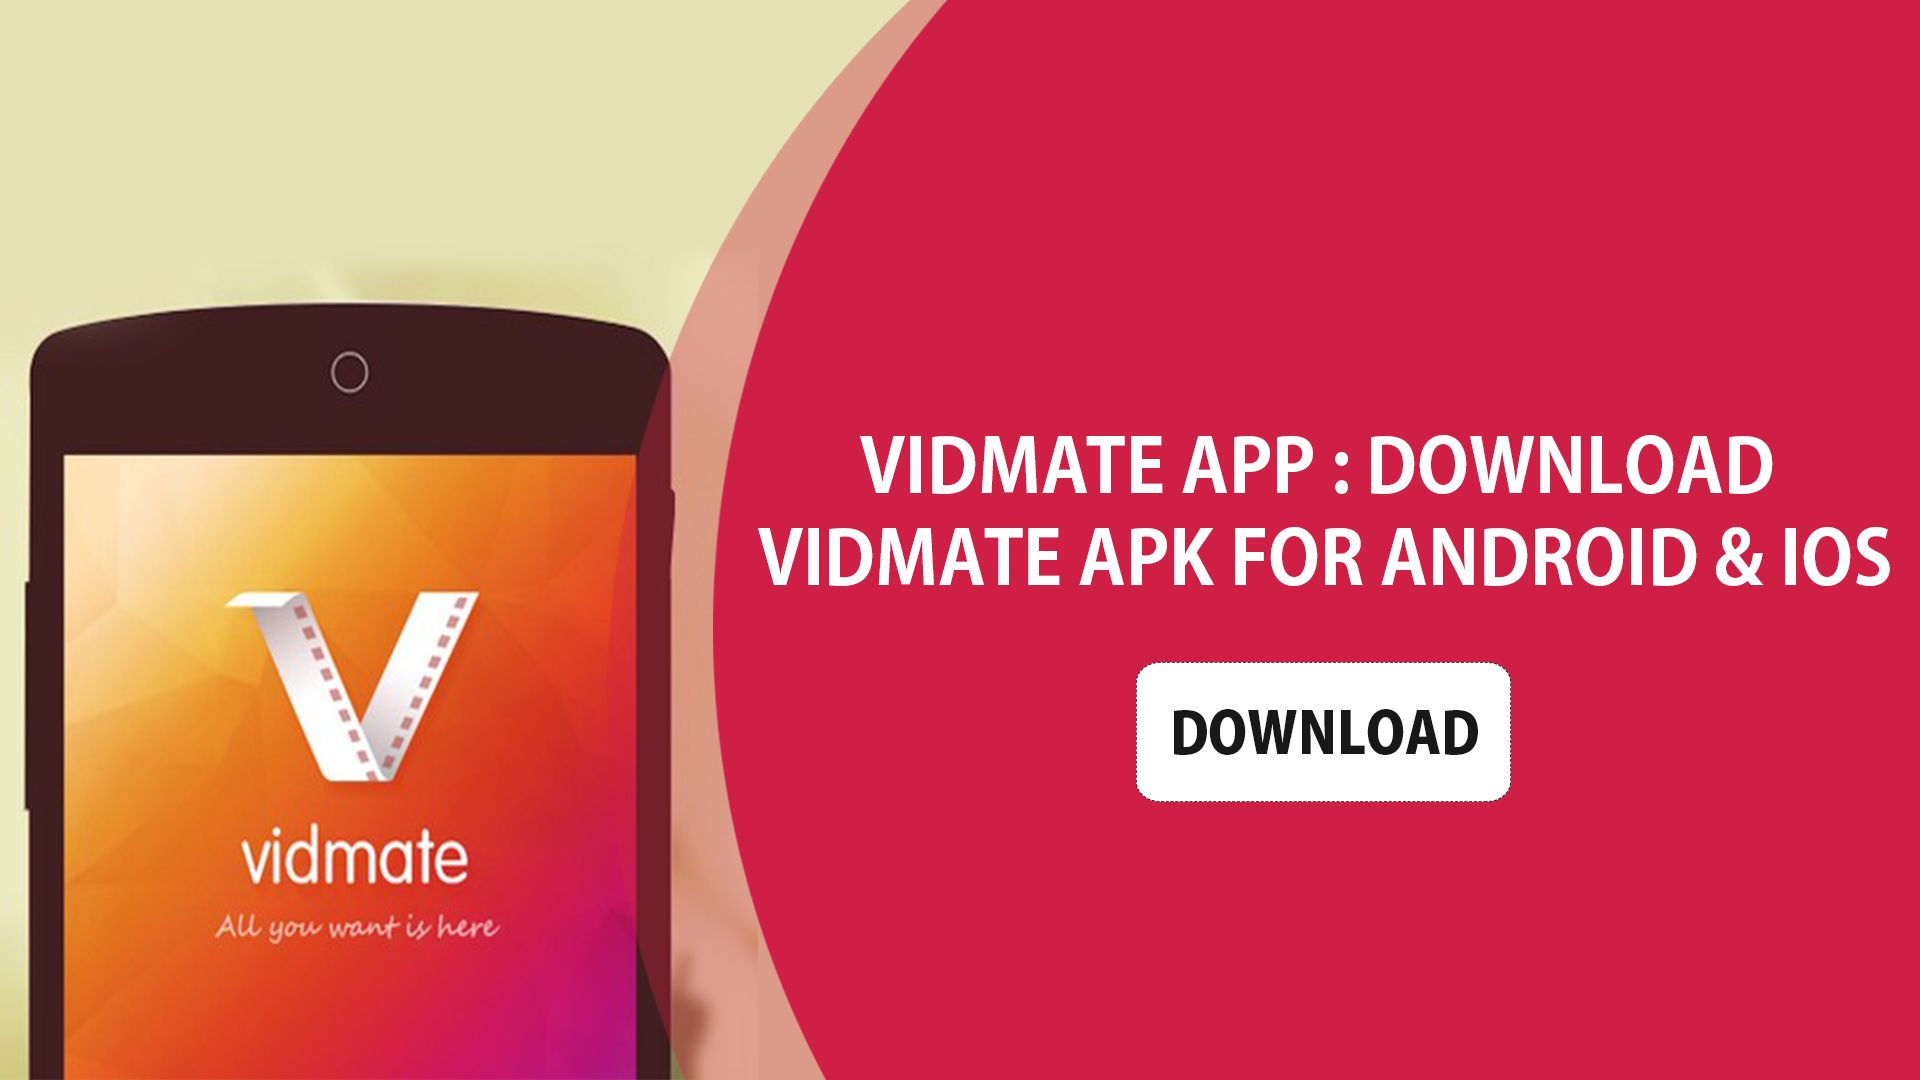 Download Unlimited Films Or Songs From Vidmate